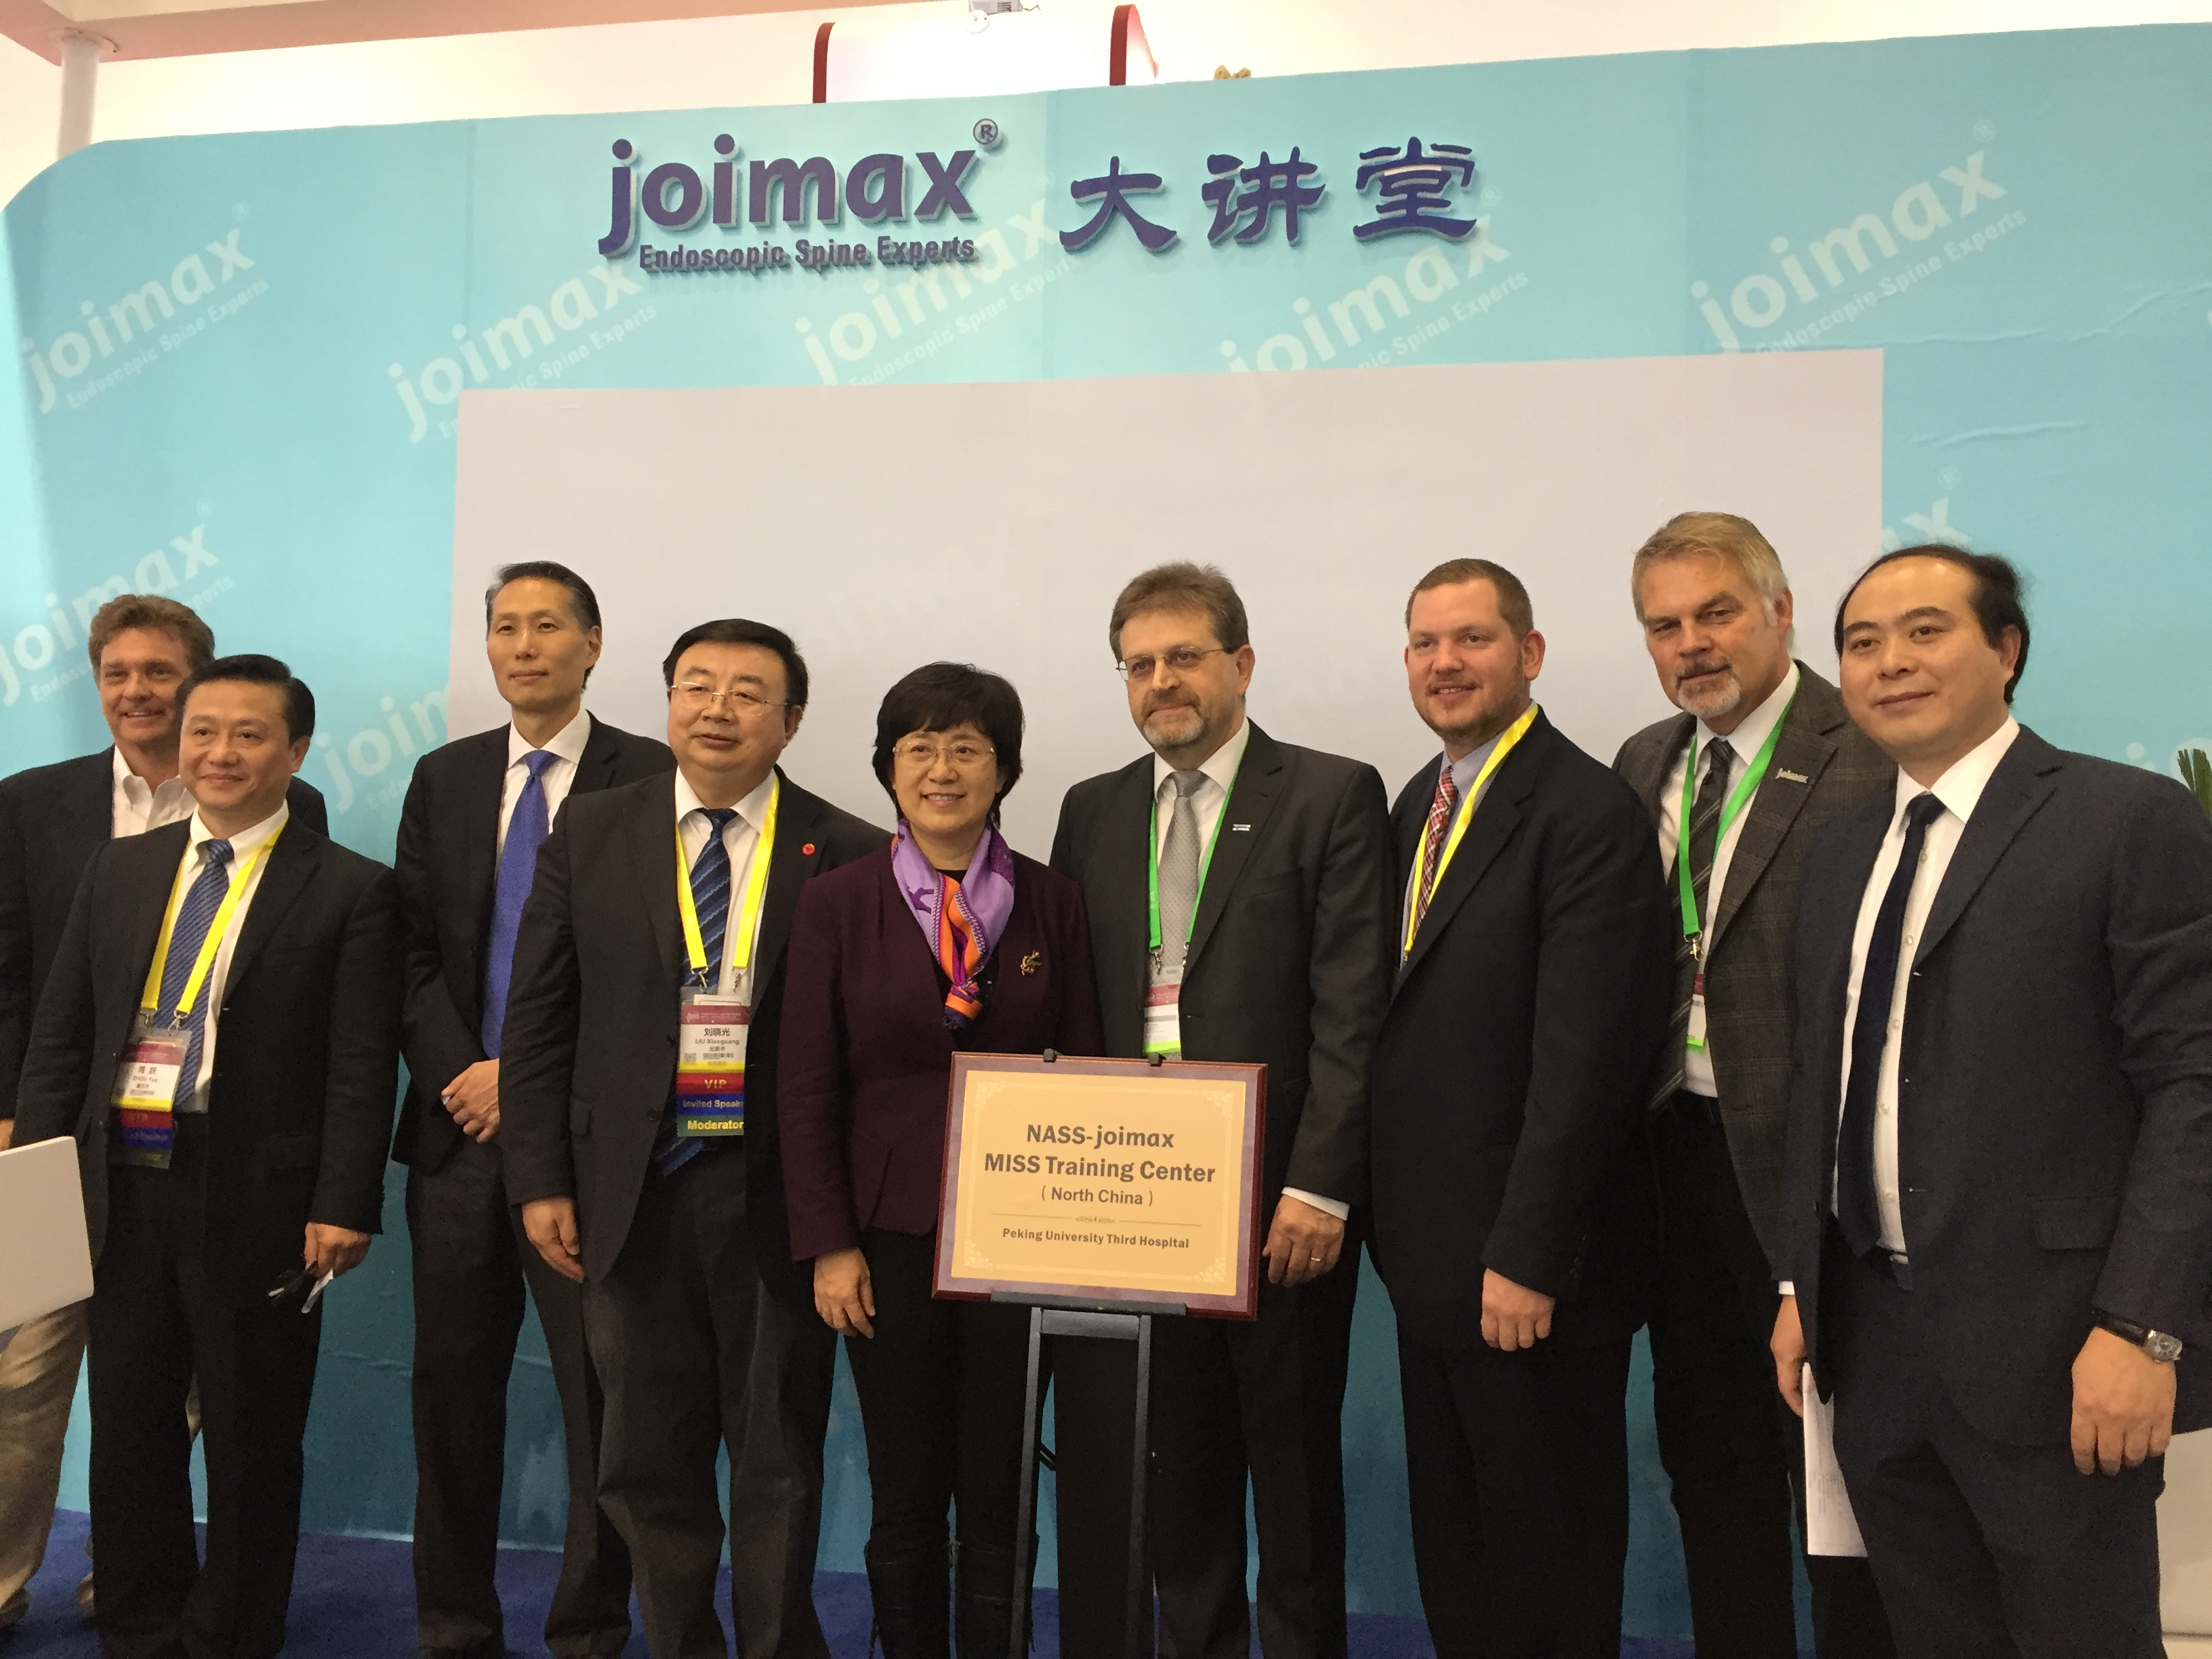 From left to right: Edward Dohring, MD, NASS Board of Directors; Prof. Yue Zhou, Xinqiao Hospital, Chairman of Chinese Society for MISS and joimax® faculty; Jeffrey C. Wang, MD, NASS Board of Directors; Prof. Xiaoguang Liu, Vice President Peking University Third Hospital; Prof. Jie Qiao, President Peking University Third Hospital; Wolfgang Ries, CEO & founder joimax® GmbH; Brad Repsold, NASS Assoc. Executive Director; Michael Roberz, International Sales Director joimax® GmbH; Qinguang You, General Manager joimax® China.